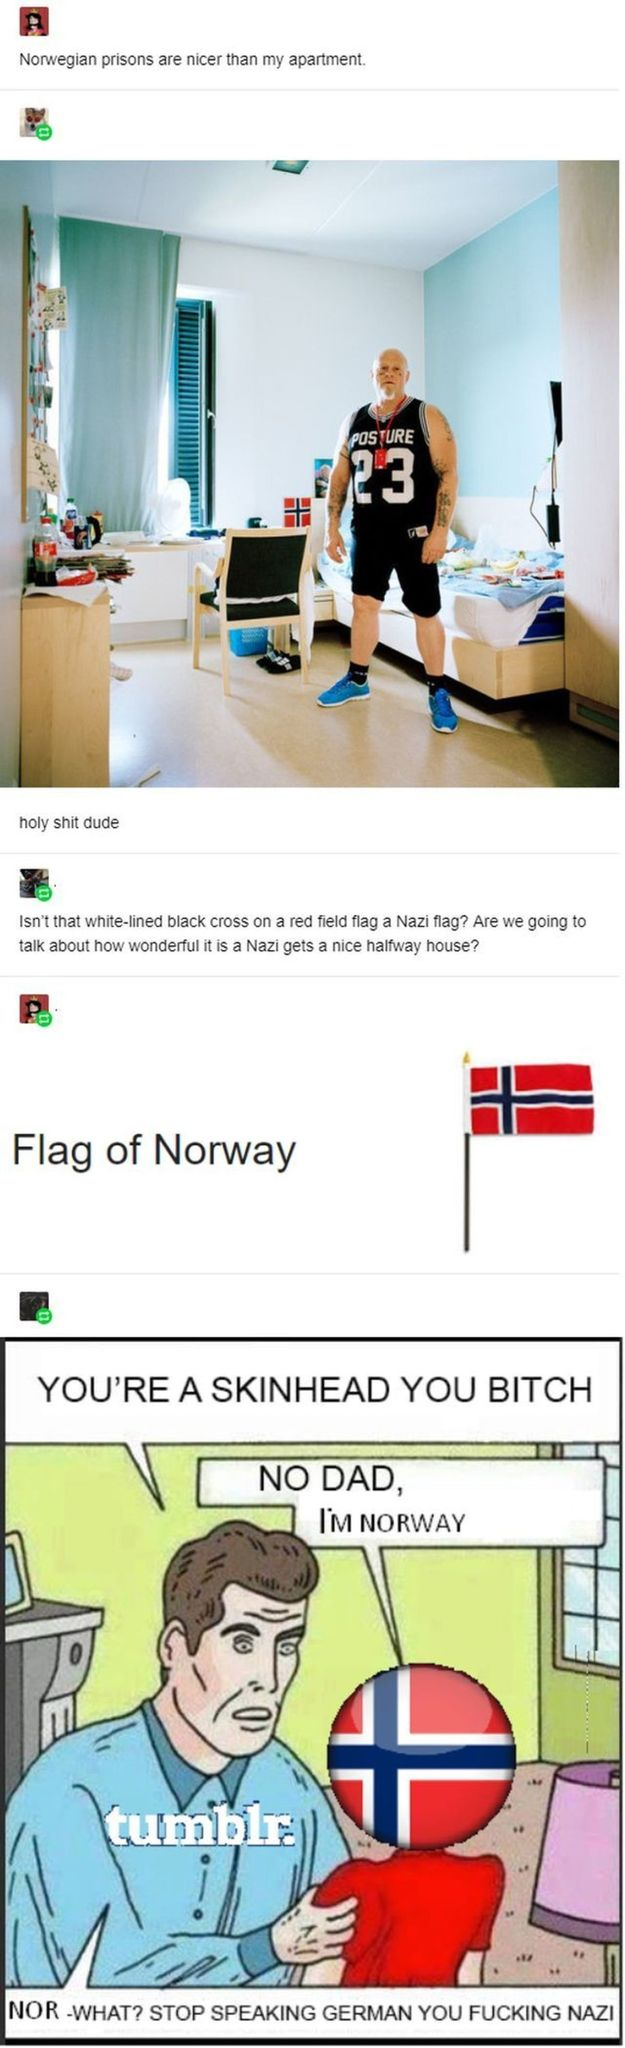 Norwegian gas chambers - meme